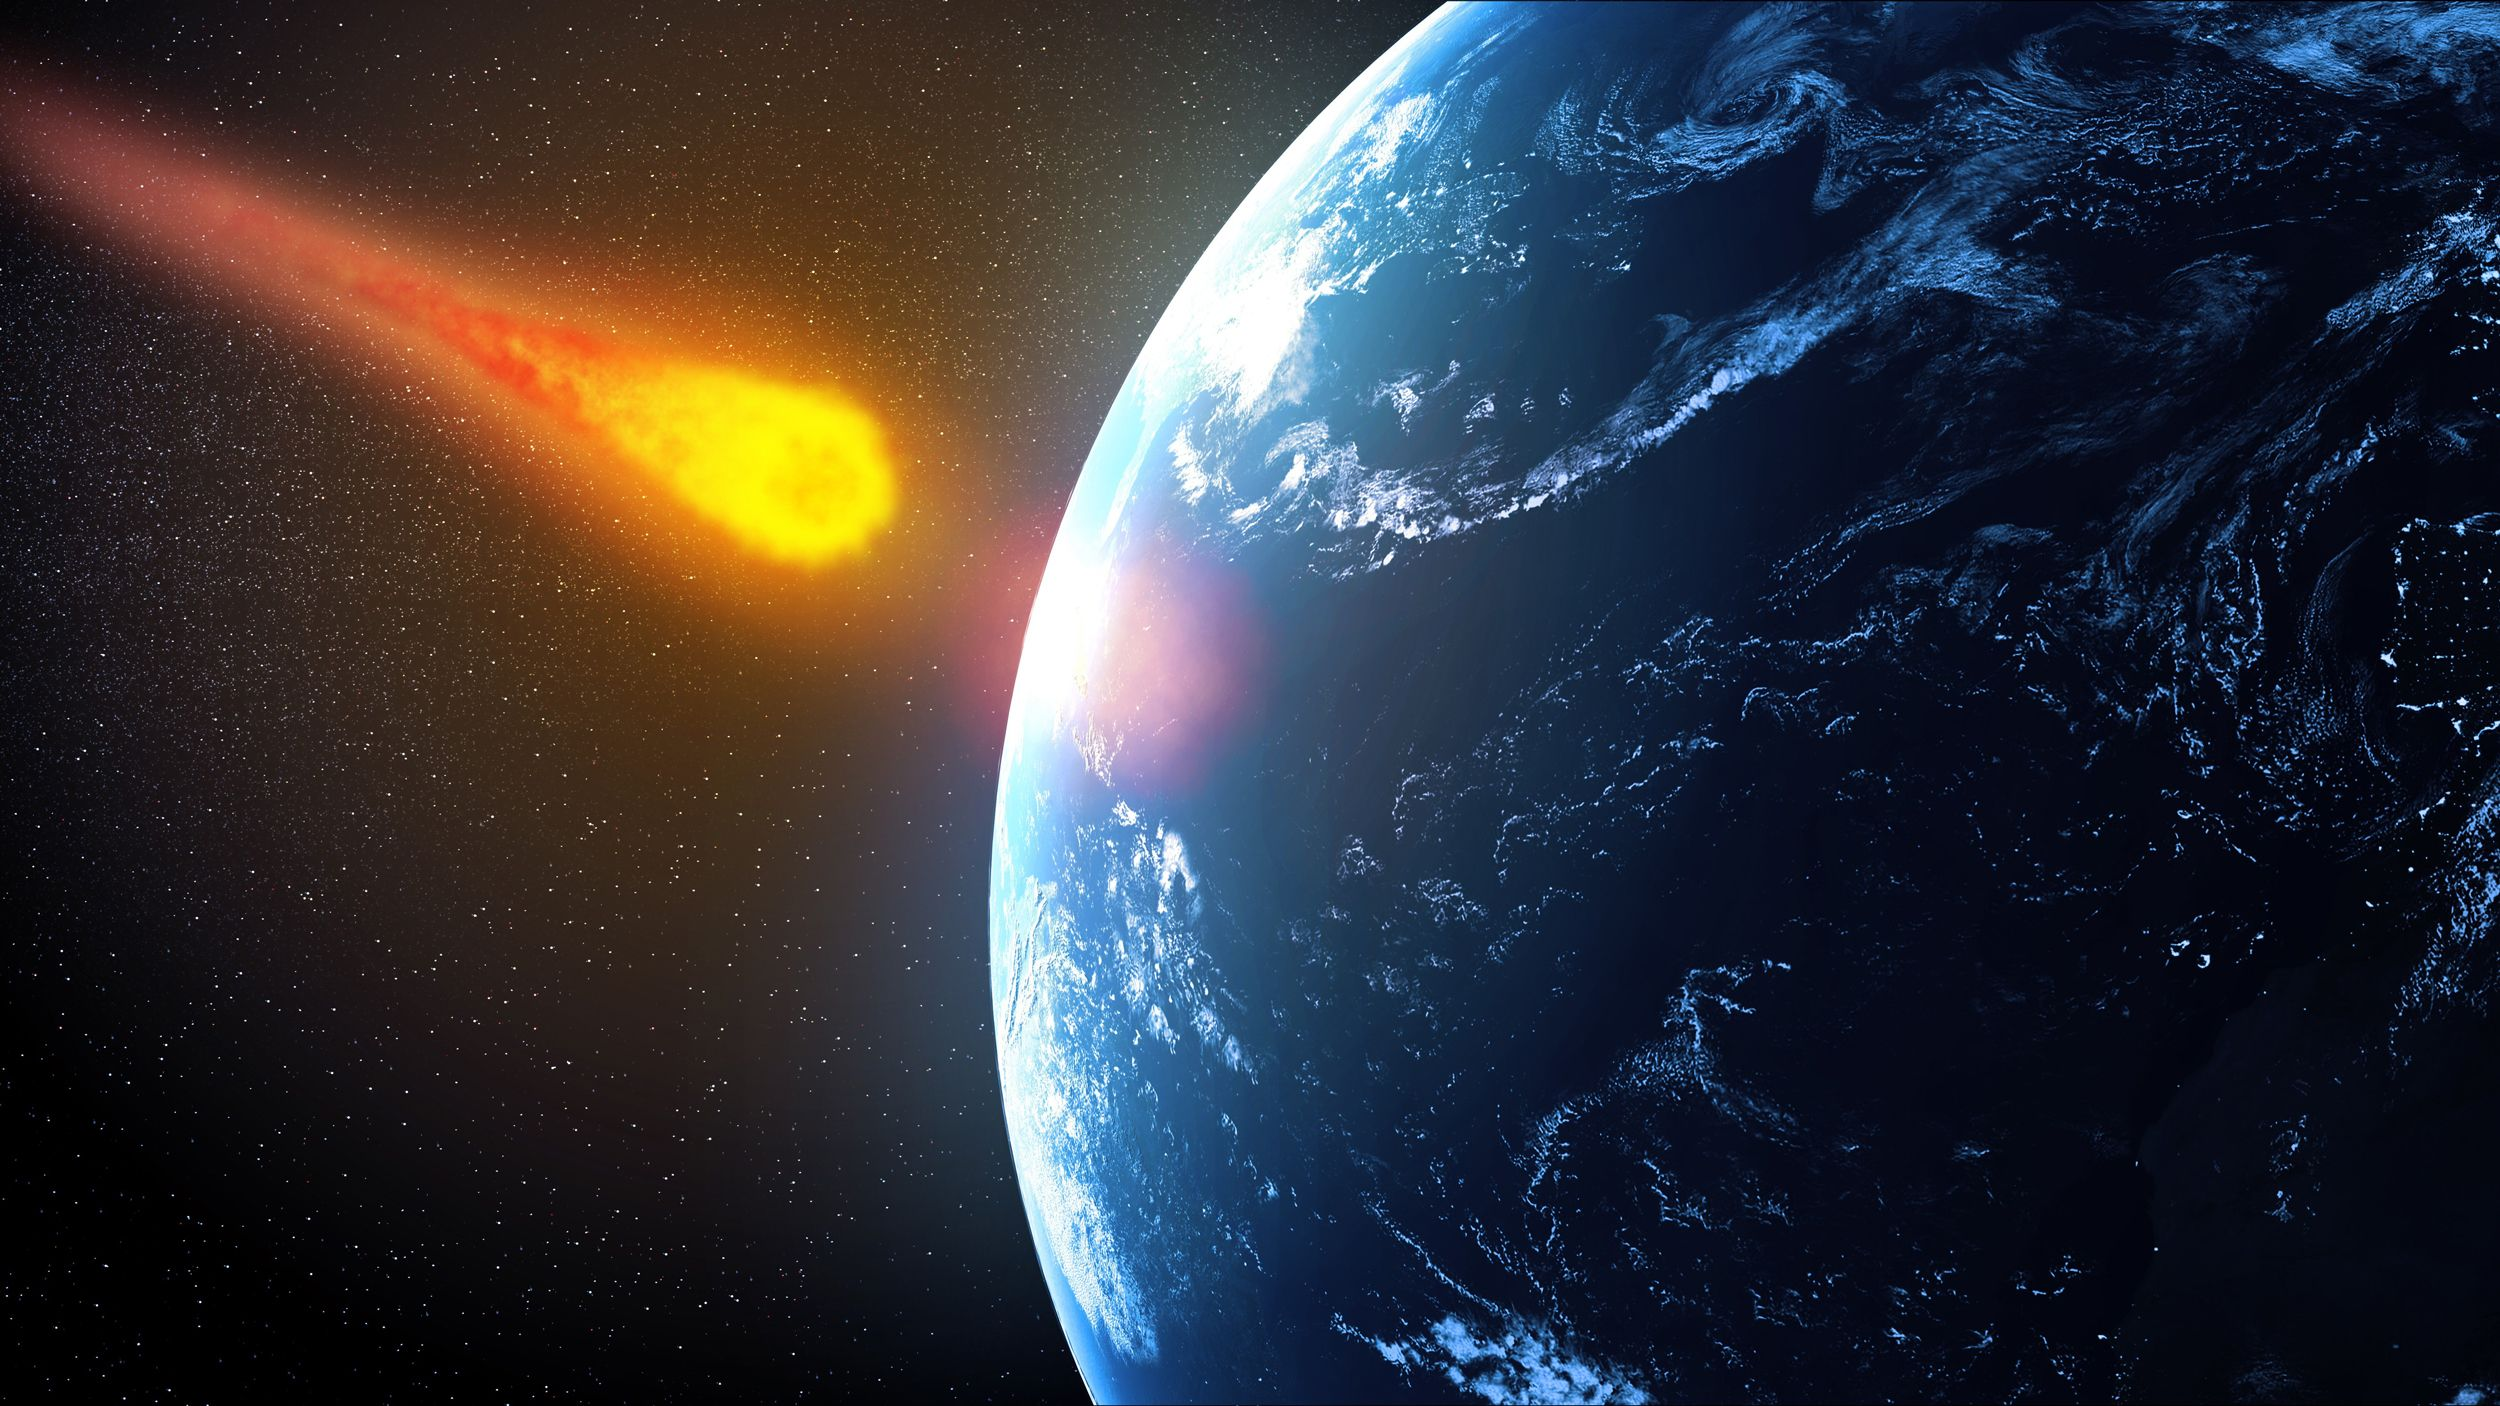 15-meter asteroid missed the Earth 72